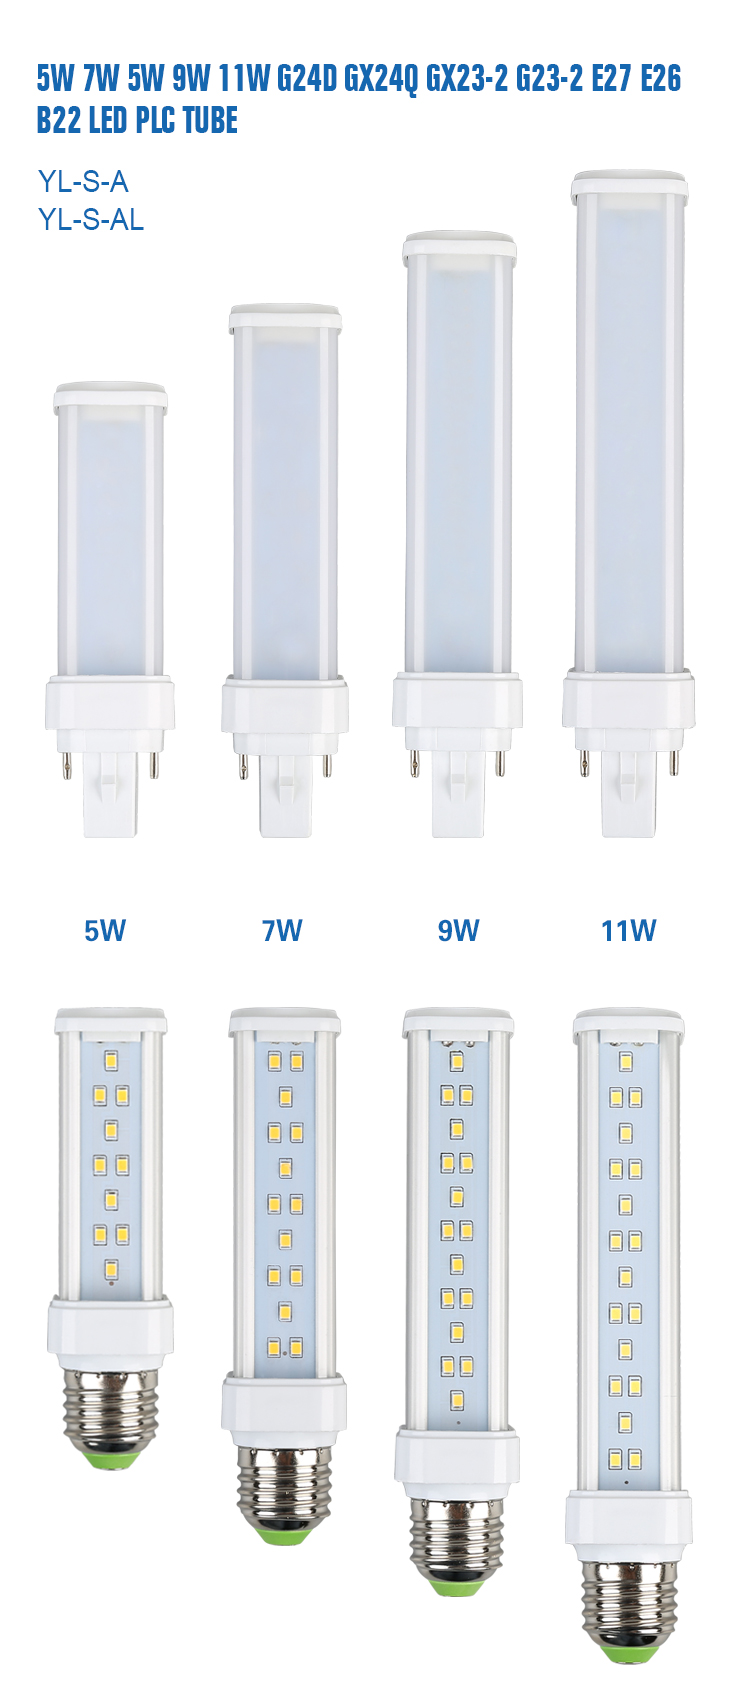 11w led PLC light 3000k 4000k 6000k 180 degree tube for replacement from zhejiang factory